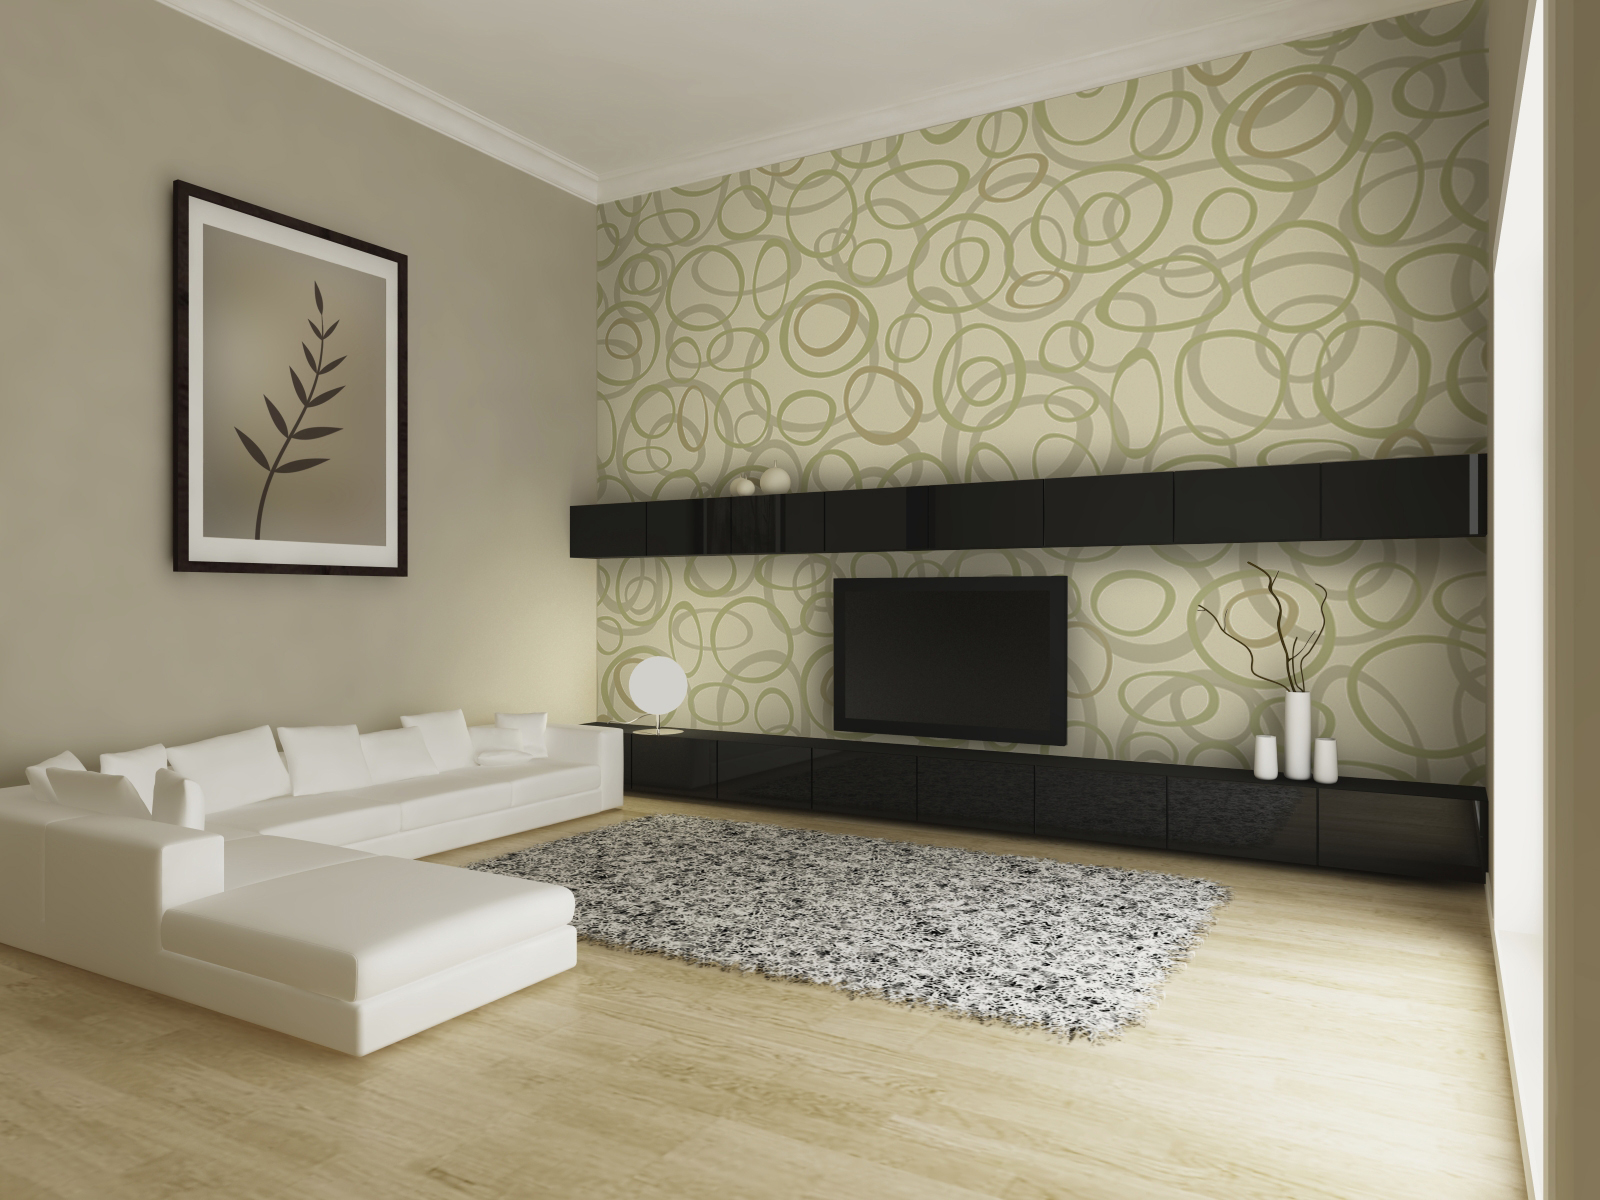 wallpaper interior walls photo - 6